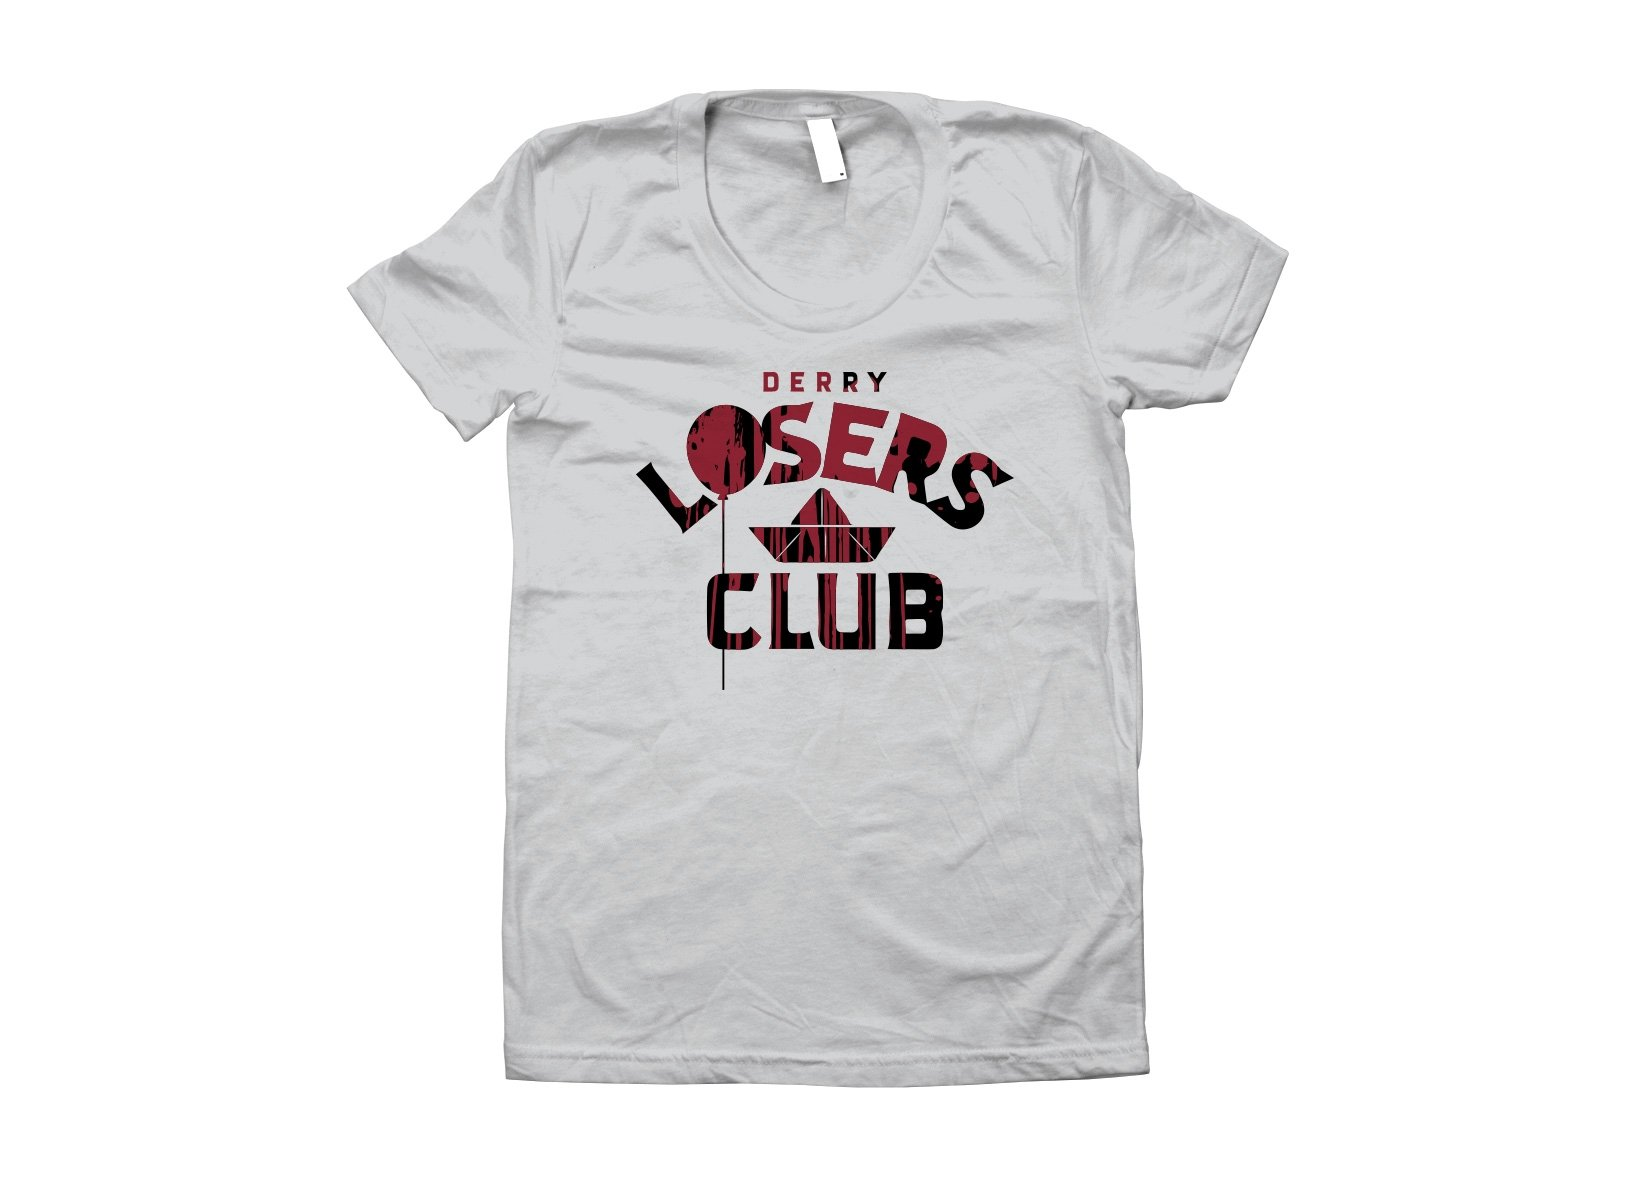 Derry Losers Club on Juniors T-Shirt